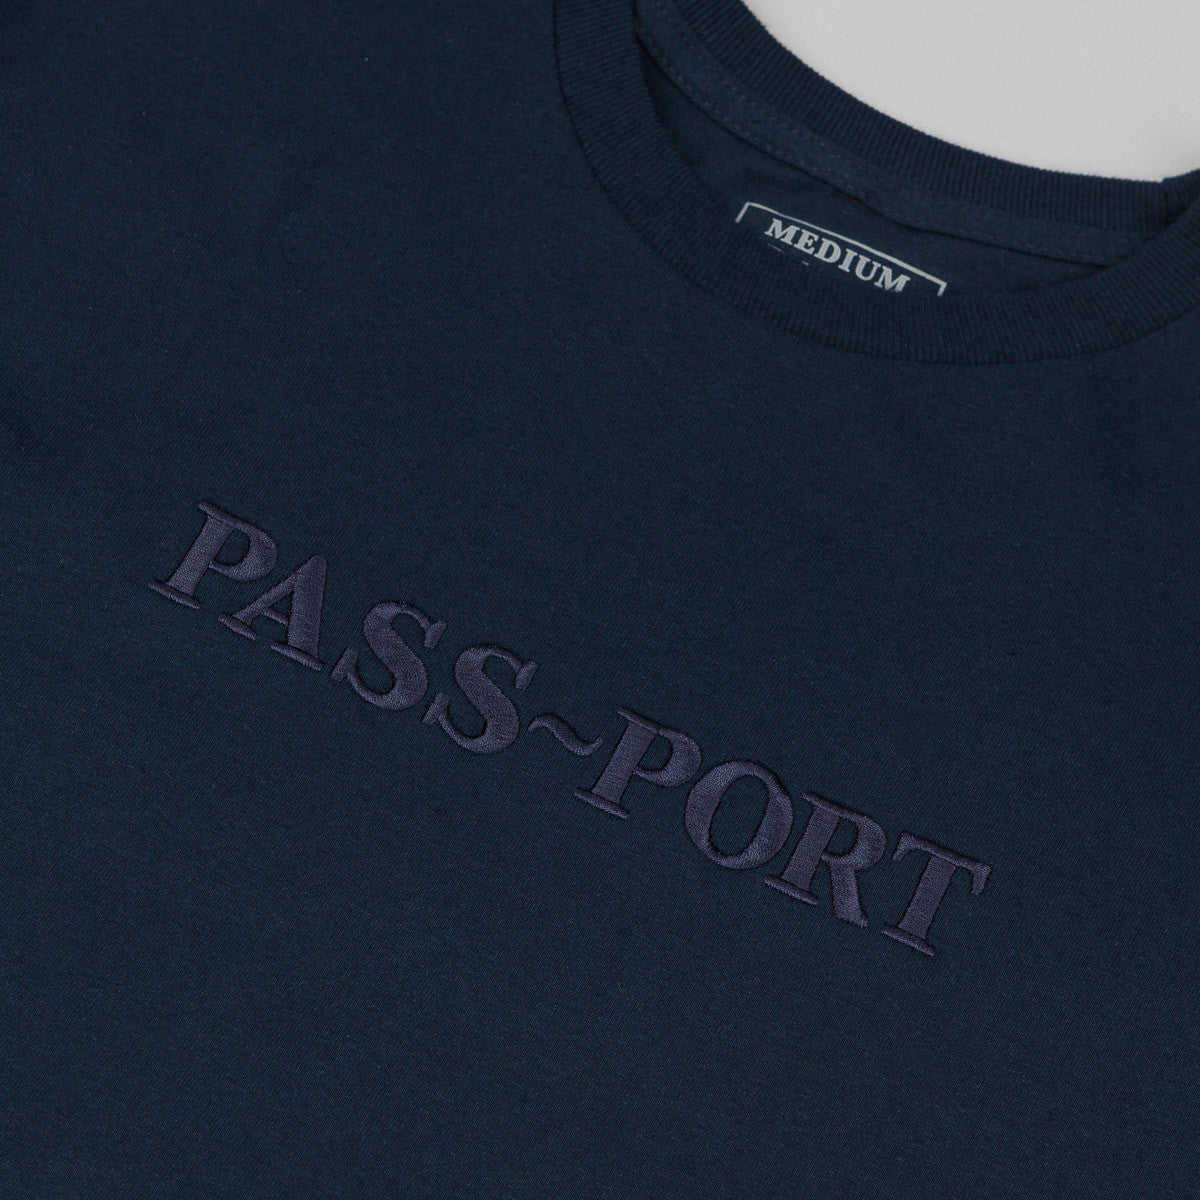 Pass Port Official Embroidery T-Shirt - Navy